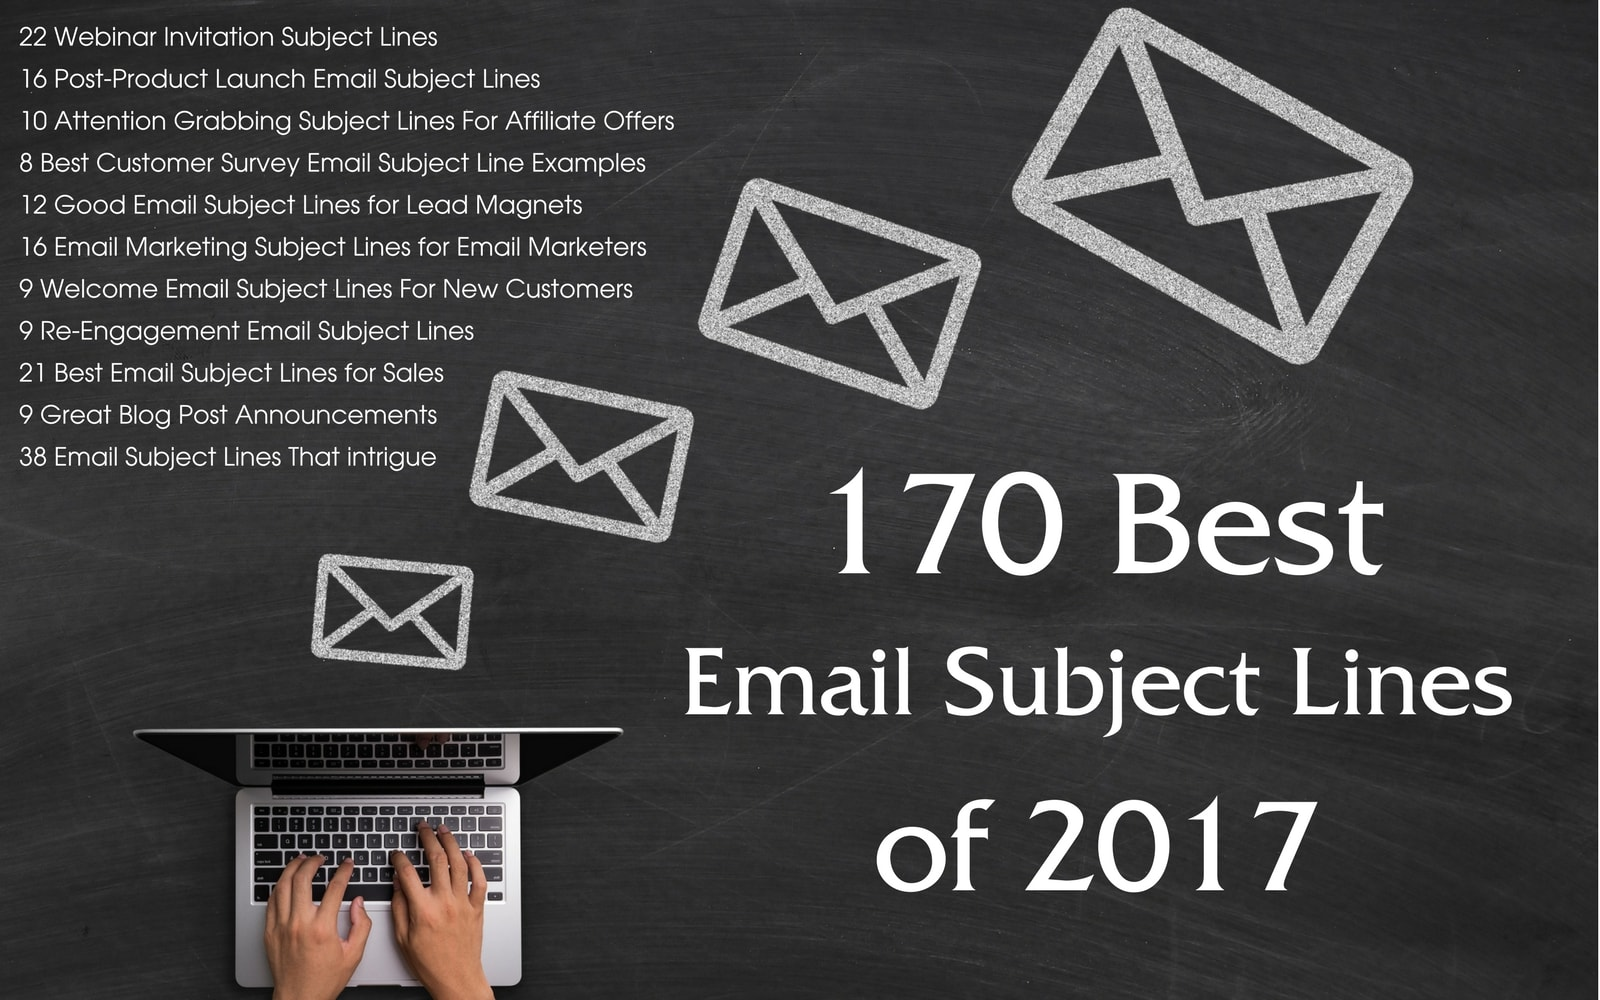 170 Best Email Subject Lines of 2017 - Stellar Platforms